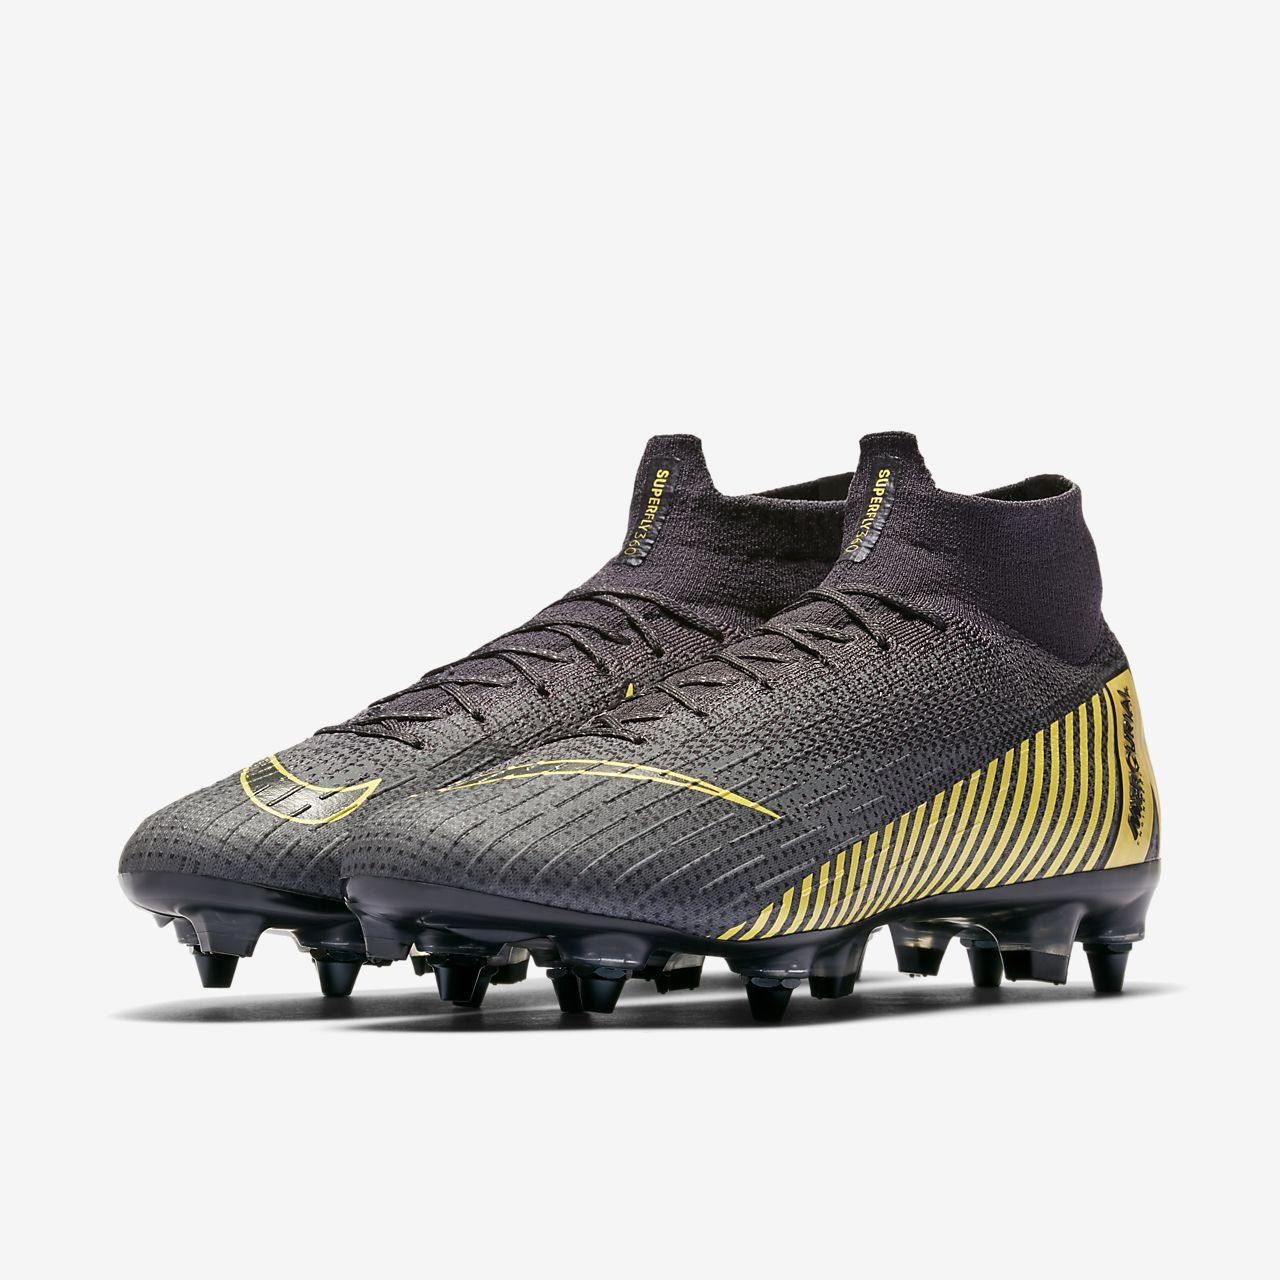 the latest 9255a 0f78a Nike Mercurial Superfly 360 Elite SG-PRO Anti-Clog Soft-Ground Football Boot